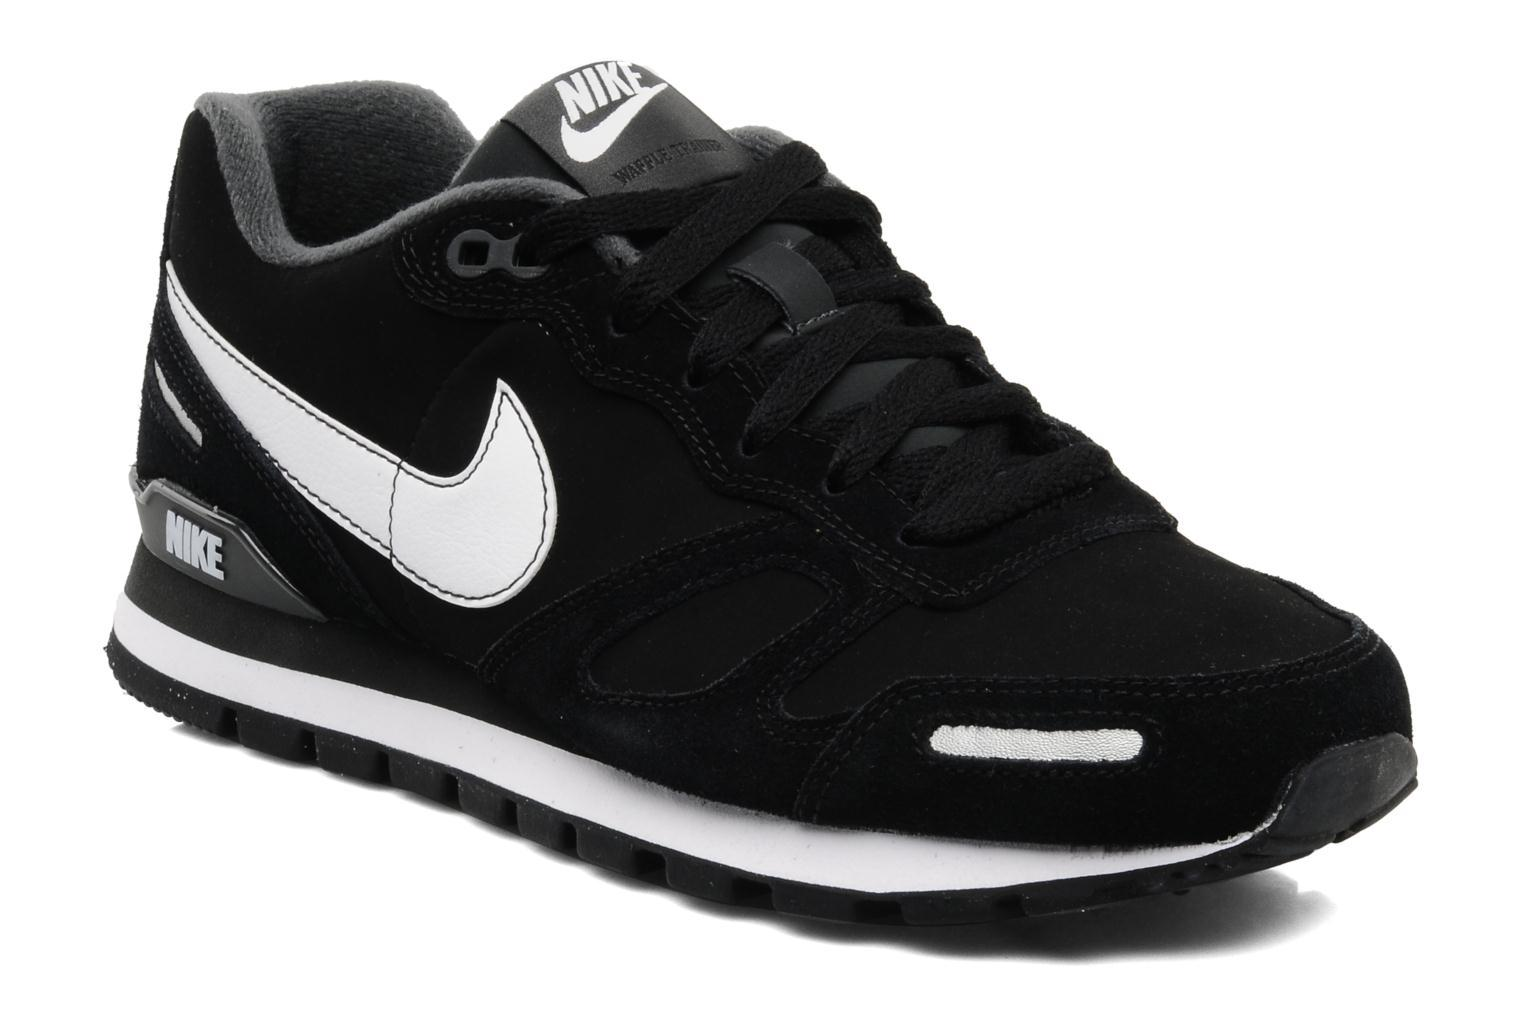 foto tenis moda nike air waffle trainer leather hombre foto 180673. Black Bedroom Furniture Sets. Home Design Ideas